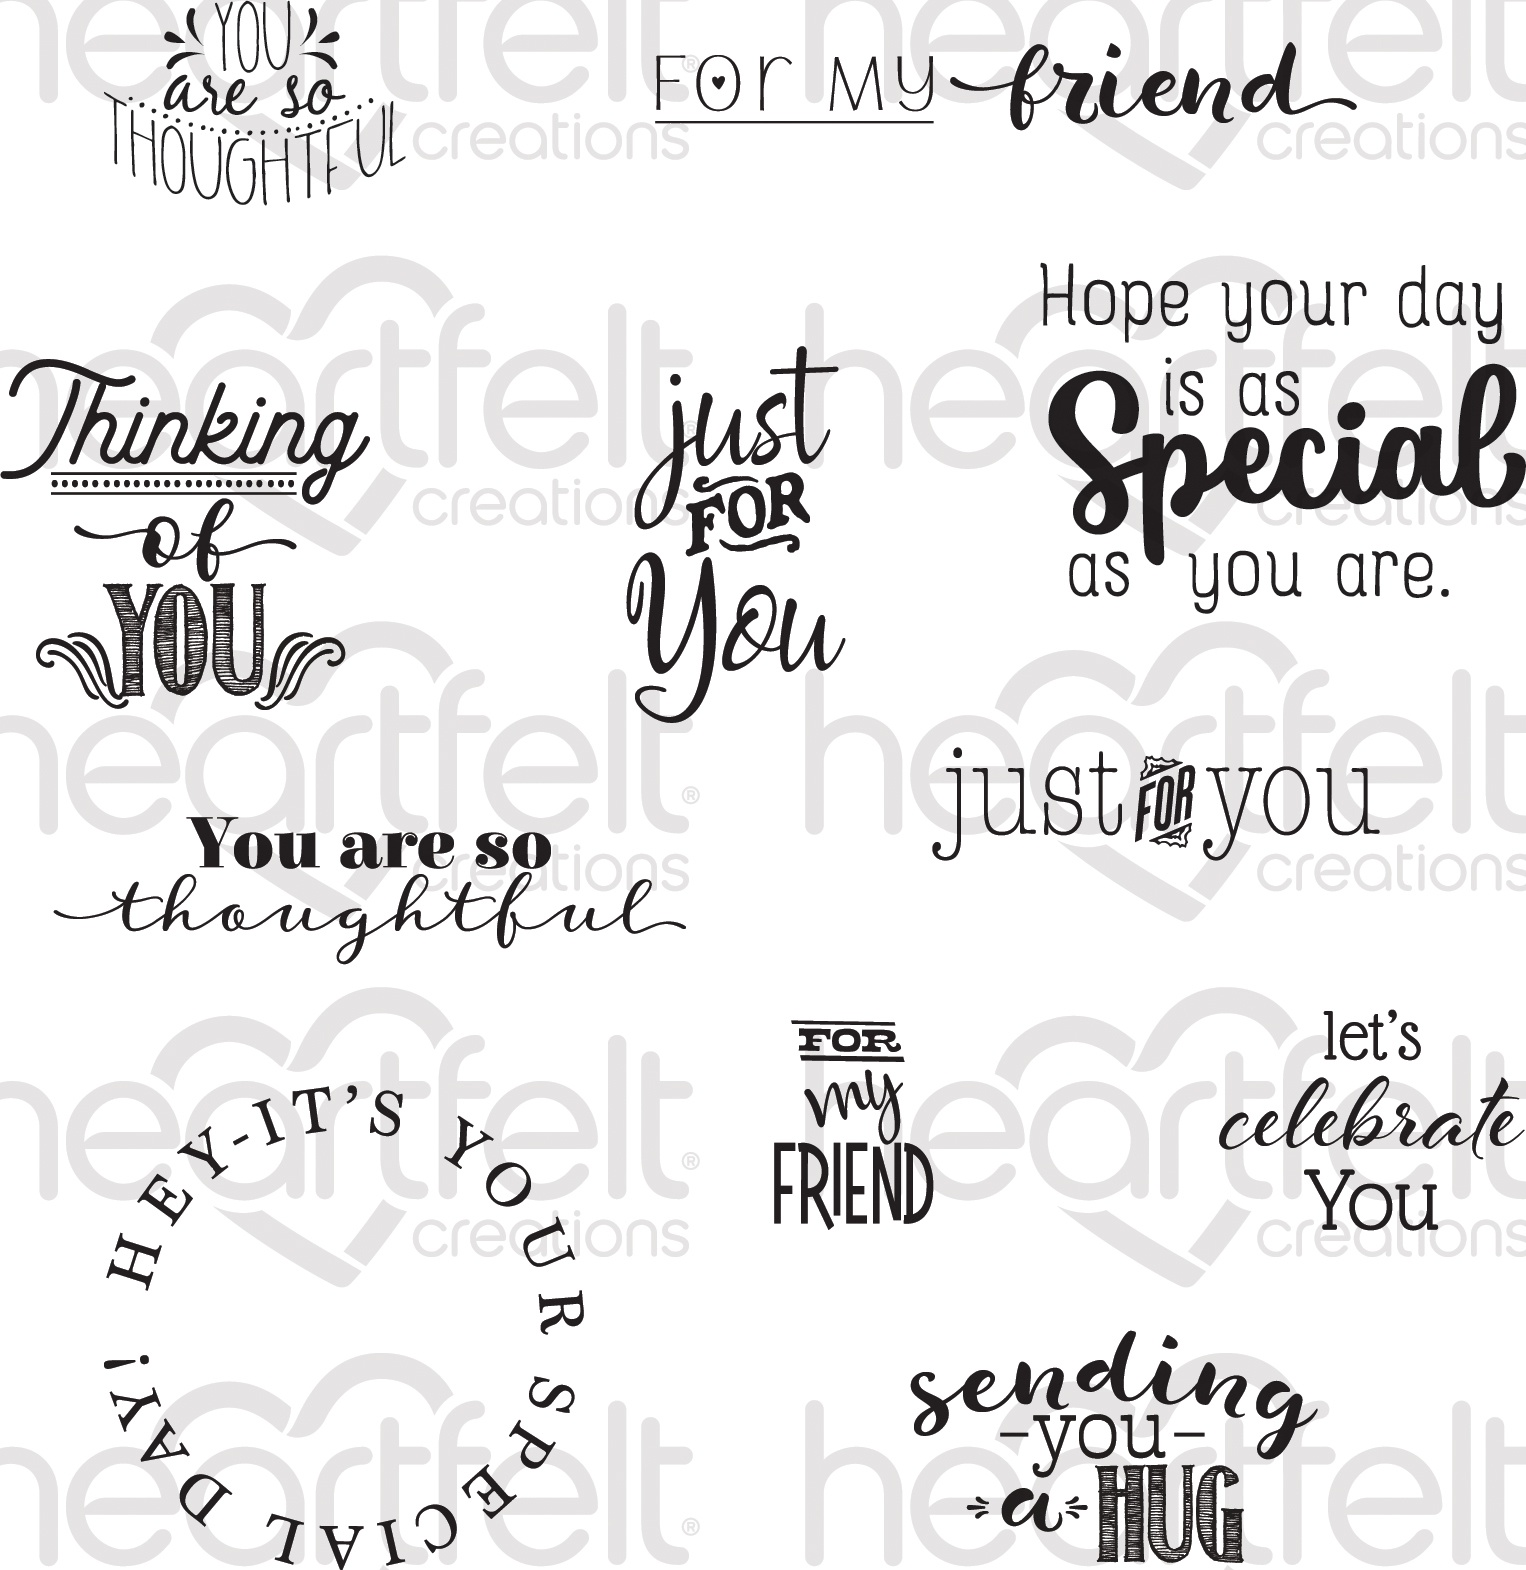 Heartfelt Creations Just for You Sentiments Stamp